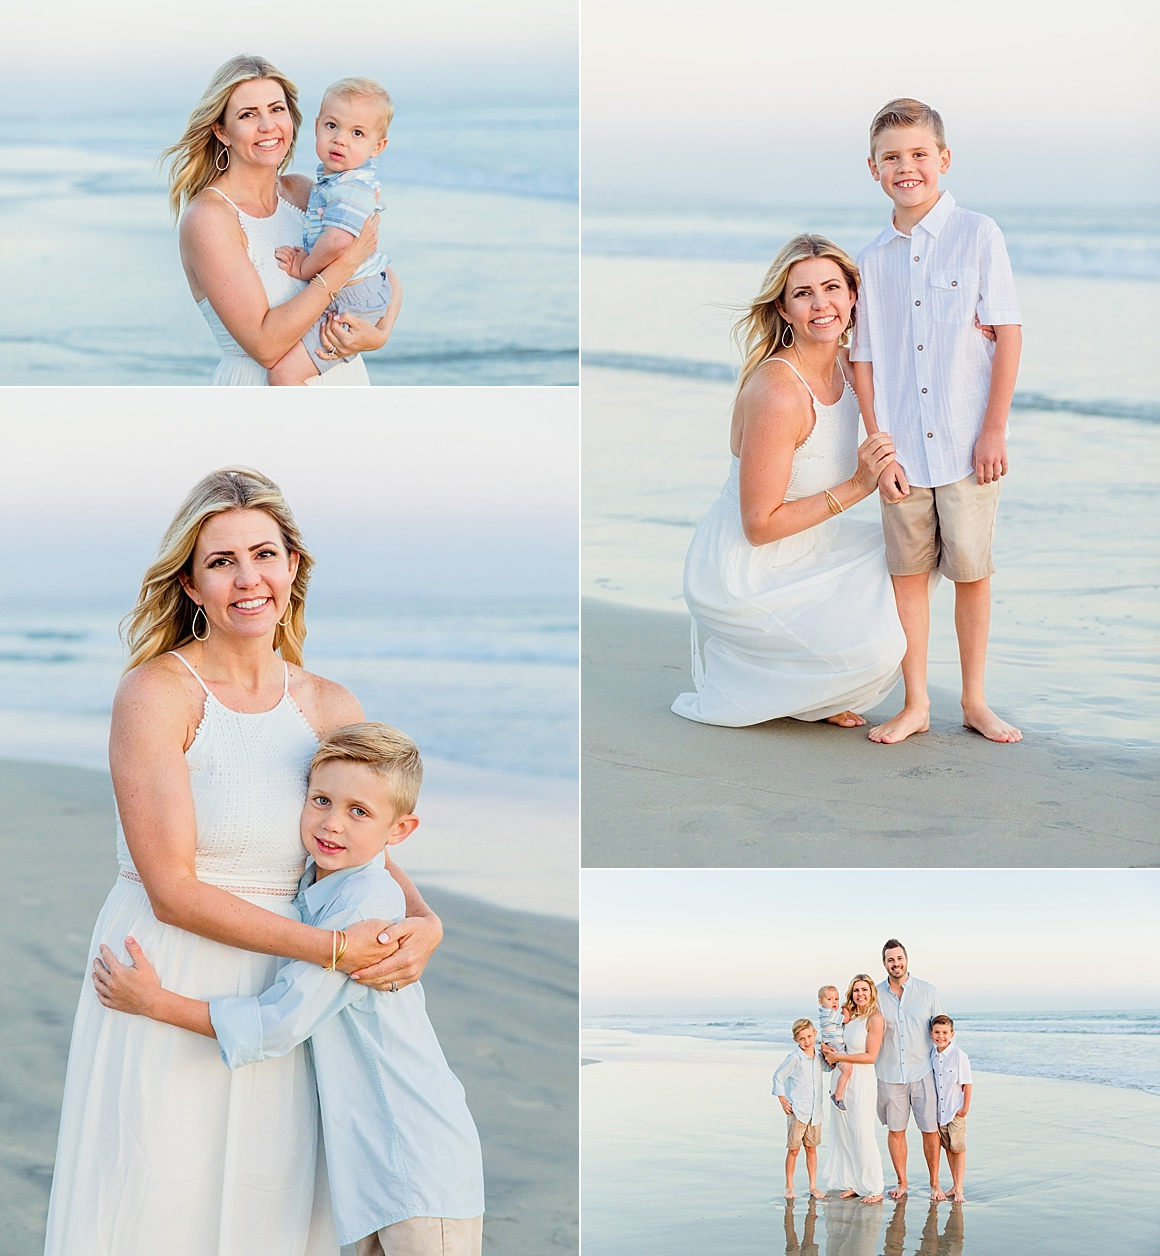 San Diego Photography | San Diego Photographer